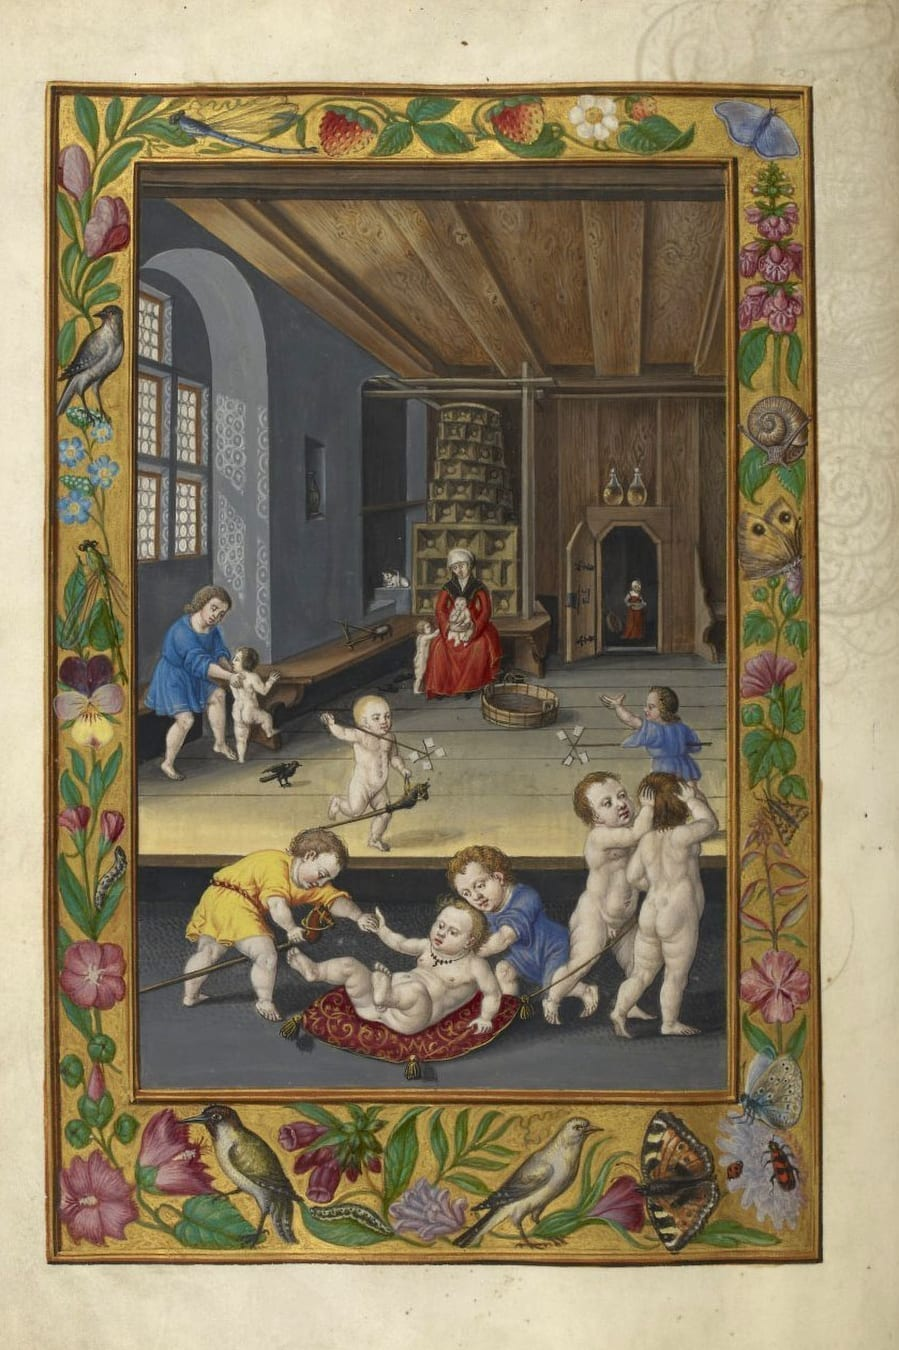 Illustration of children at play from the Alchemical manuscript Splendor Solis